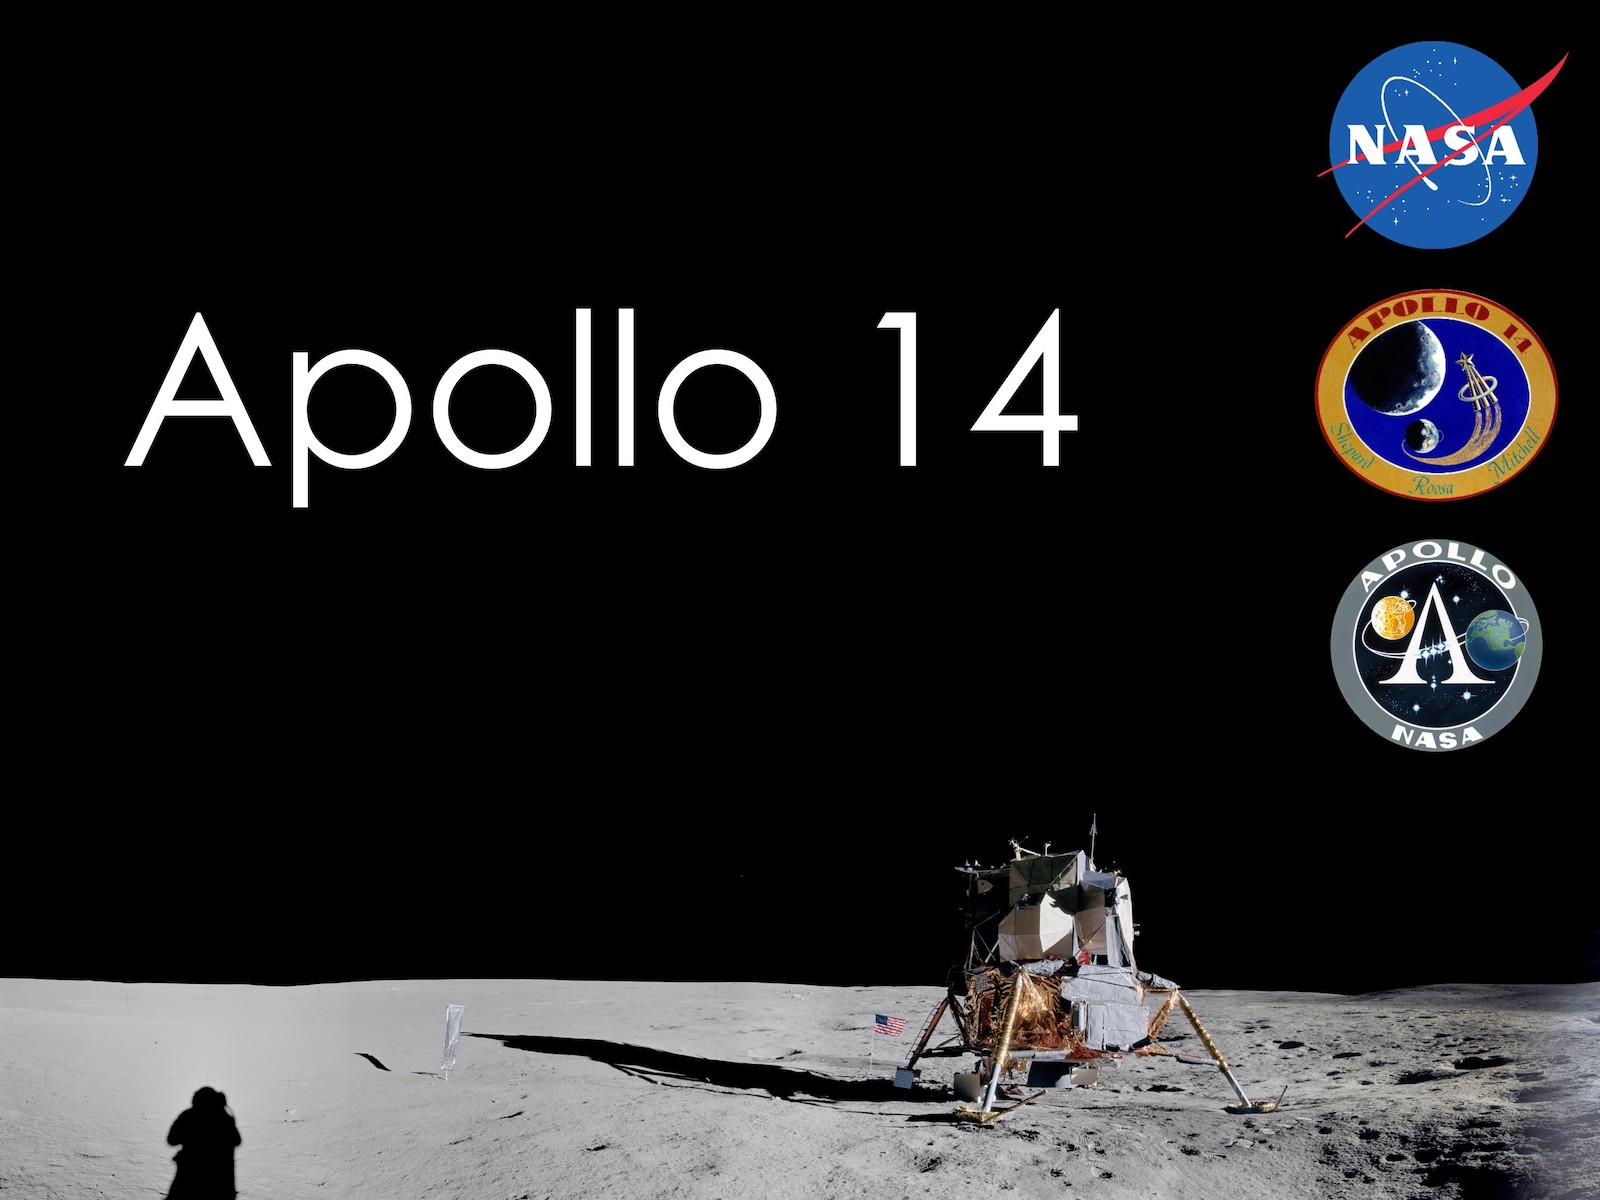 "Title slide of Apollo 14 presentation. Large text reads ""Apollo 14"". The background shows a lander on the lunar surface, with the astronaut photographer's shadow just visible at the lower edge of the image. The NASA logo and two Apollo patches line the right-hand edge."